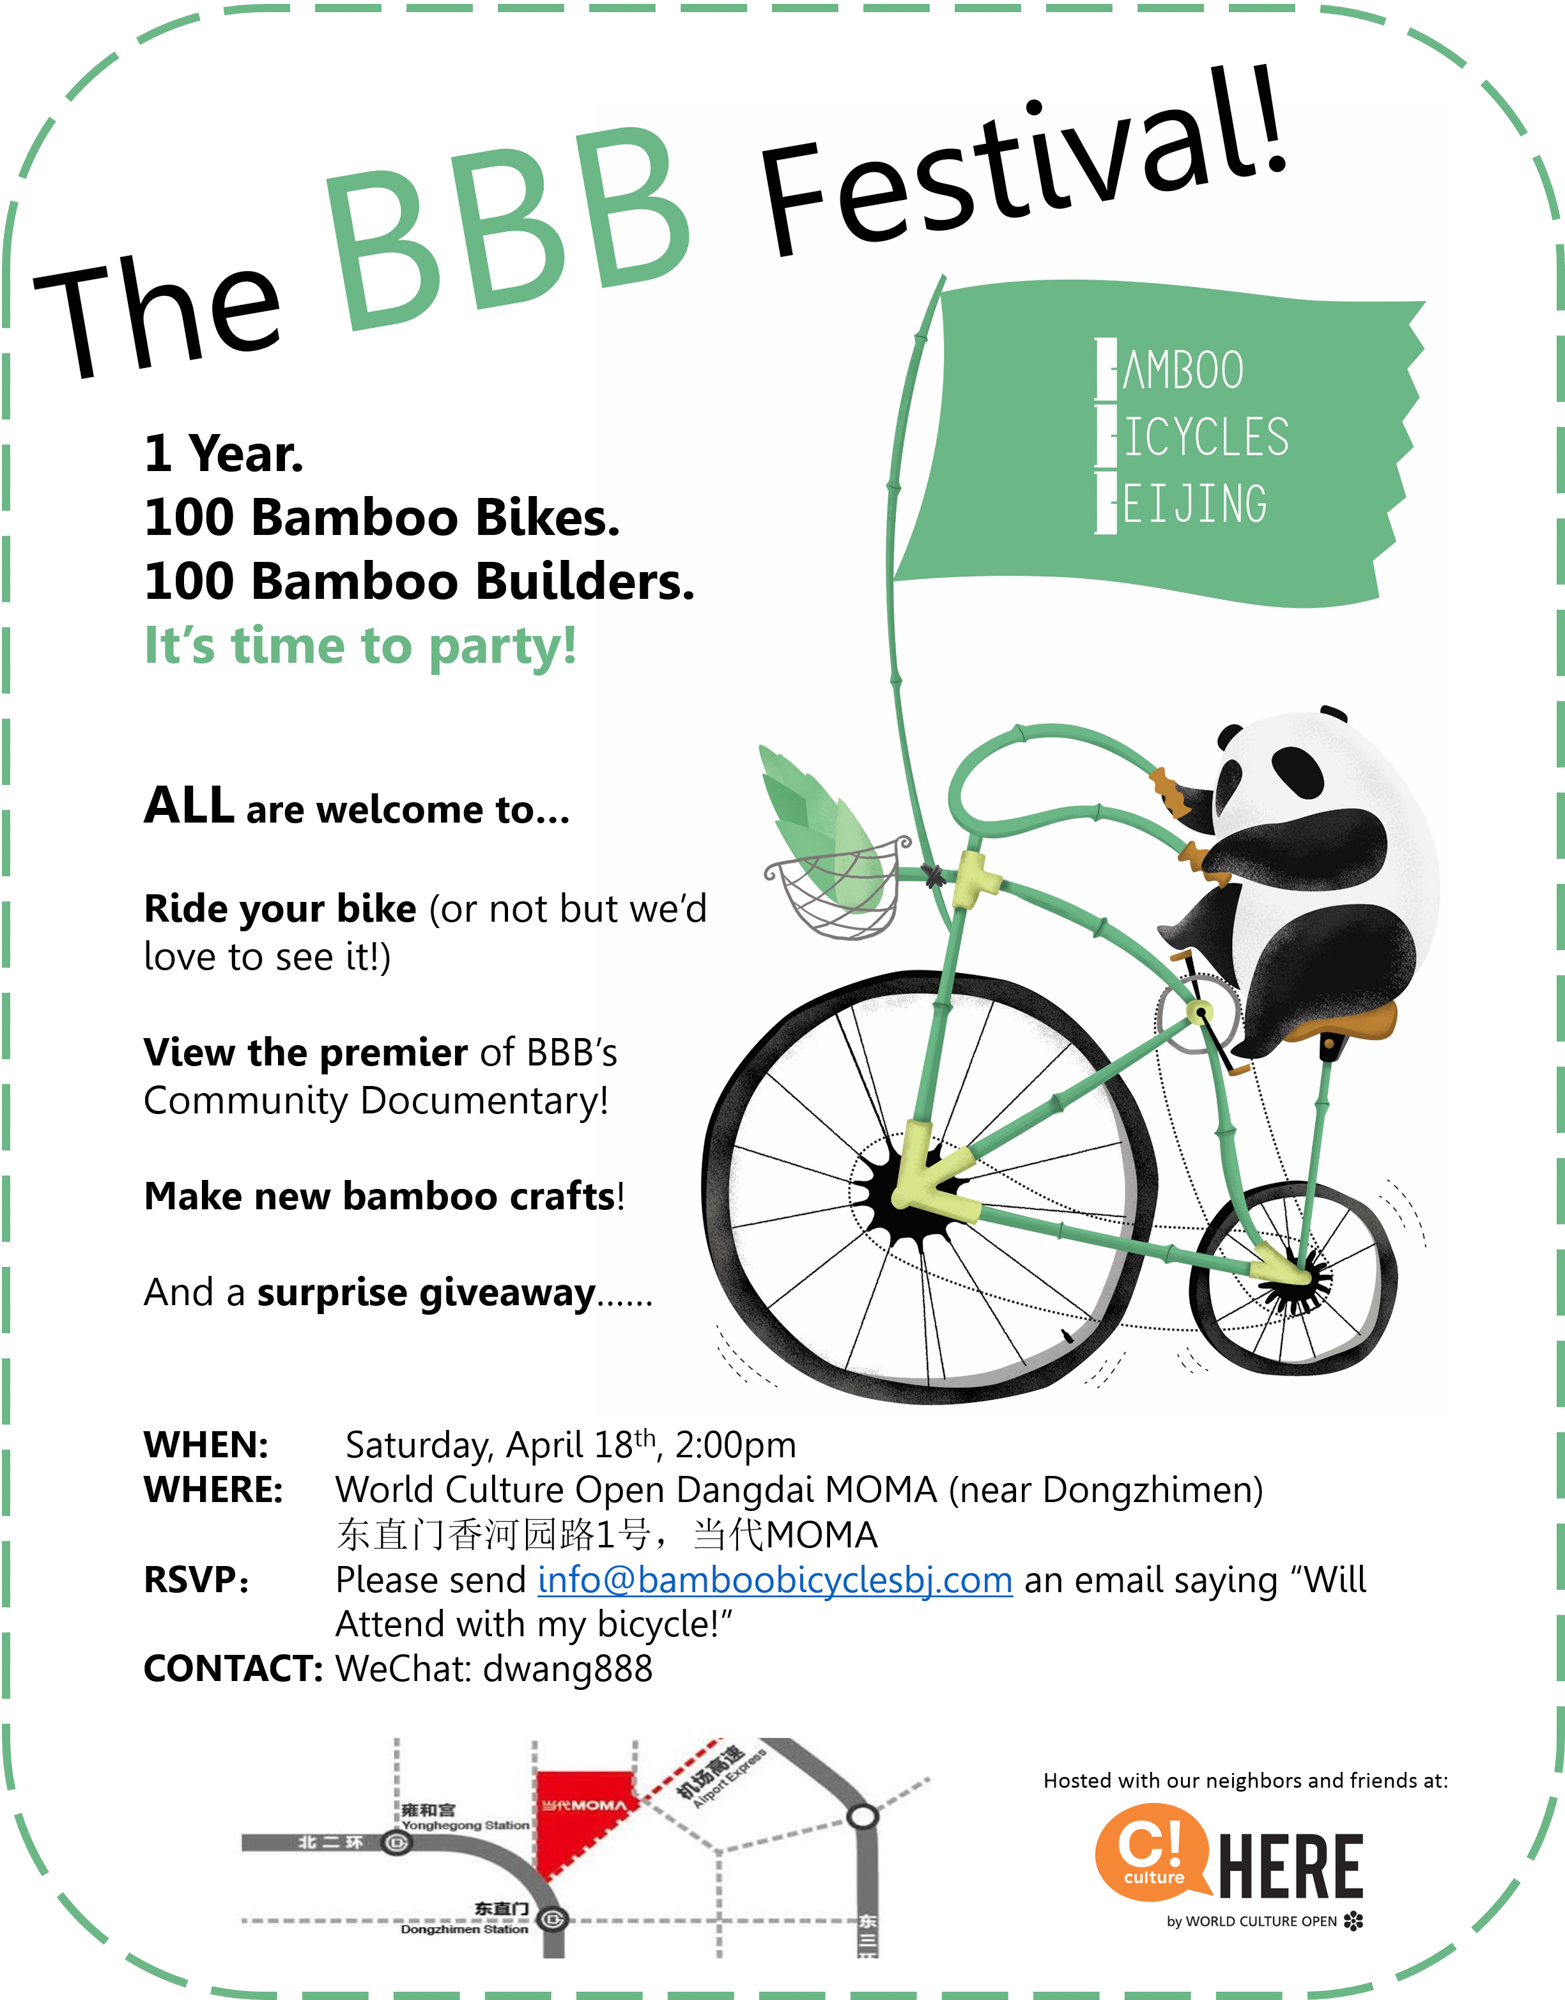 The Bamboo Bicycles Beijing Festival!